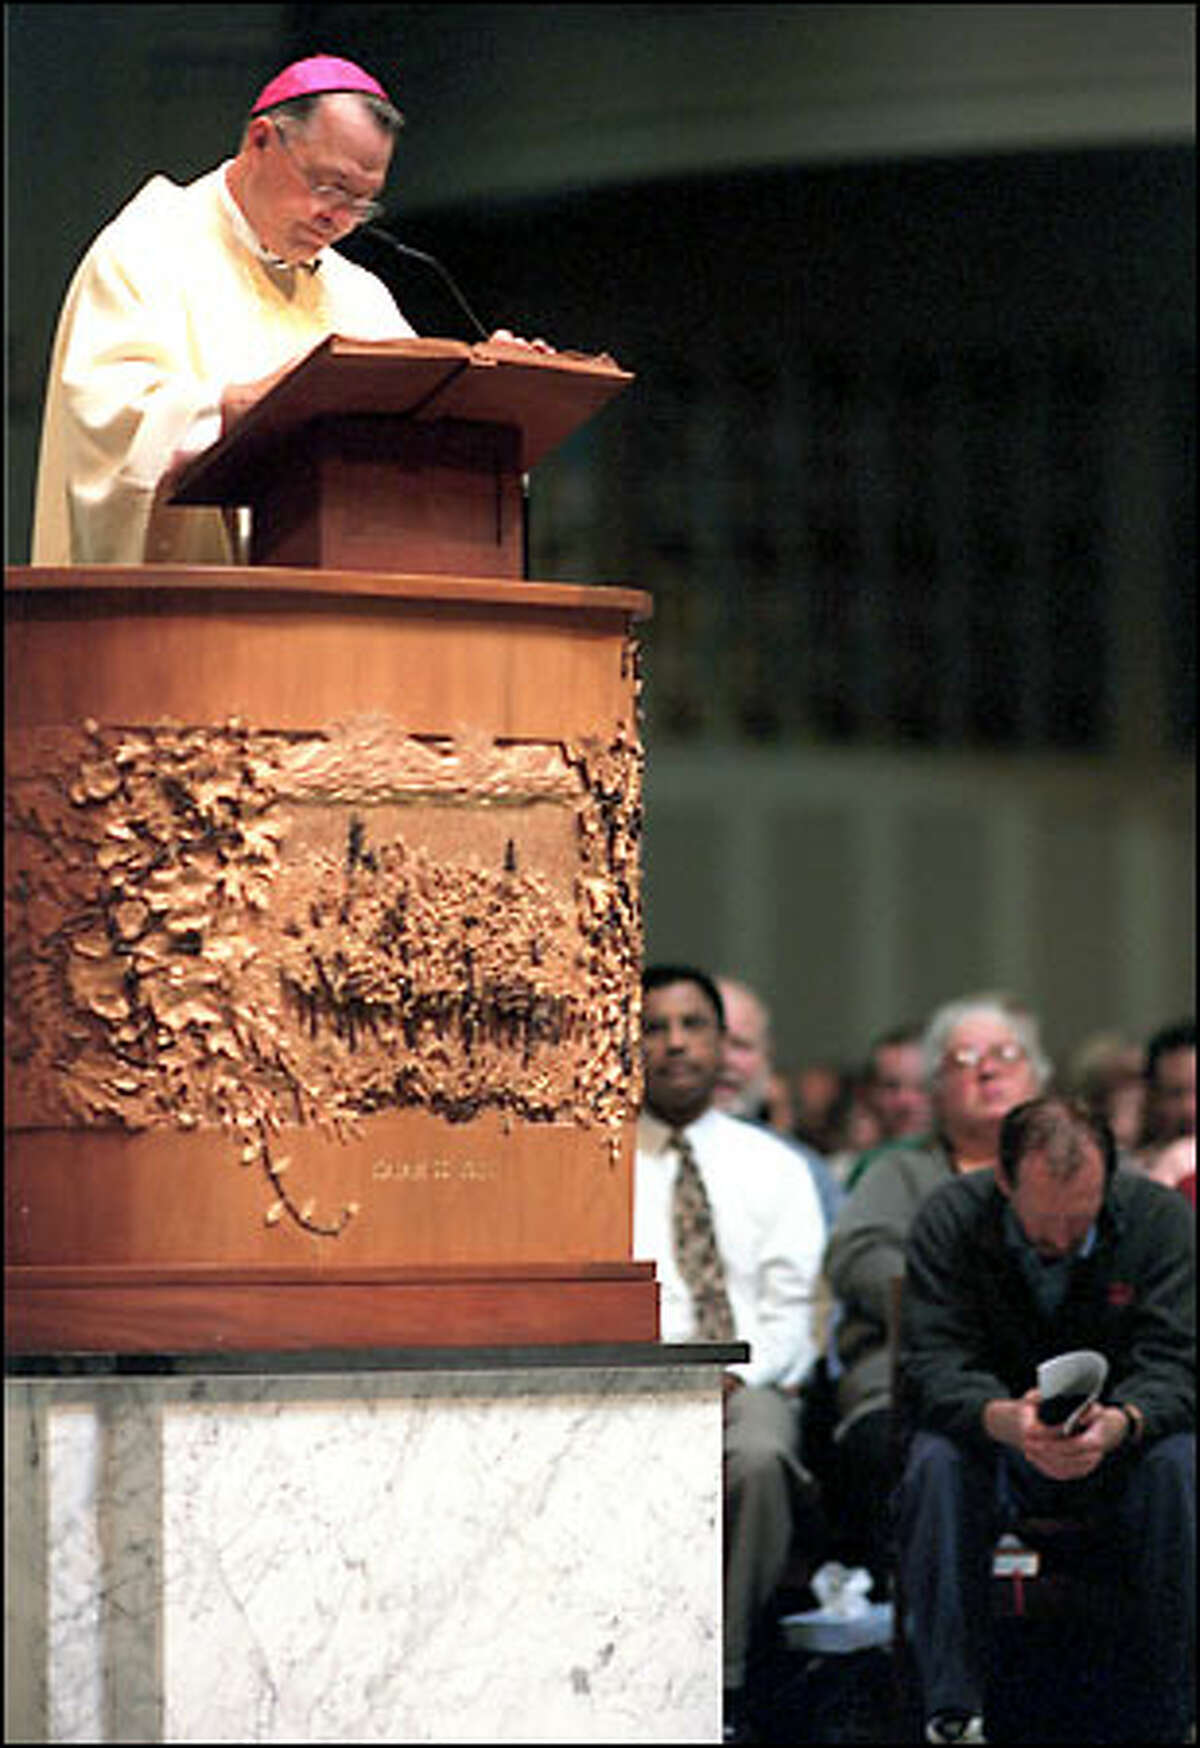 File -- After the 9/11 attacks, Archbishop Alexander Brunett tries to console Seattleites during his sermon at St. James Cathedral. Hundreds packed the church.